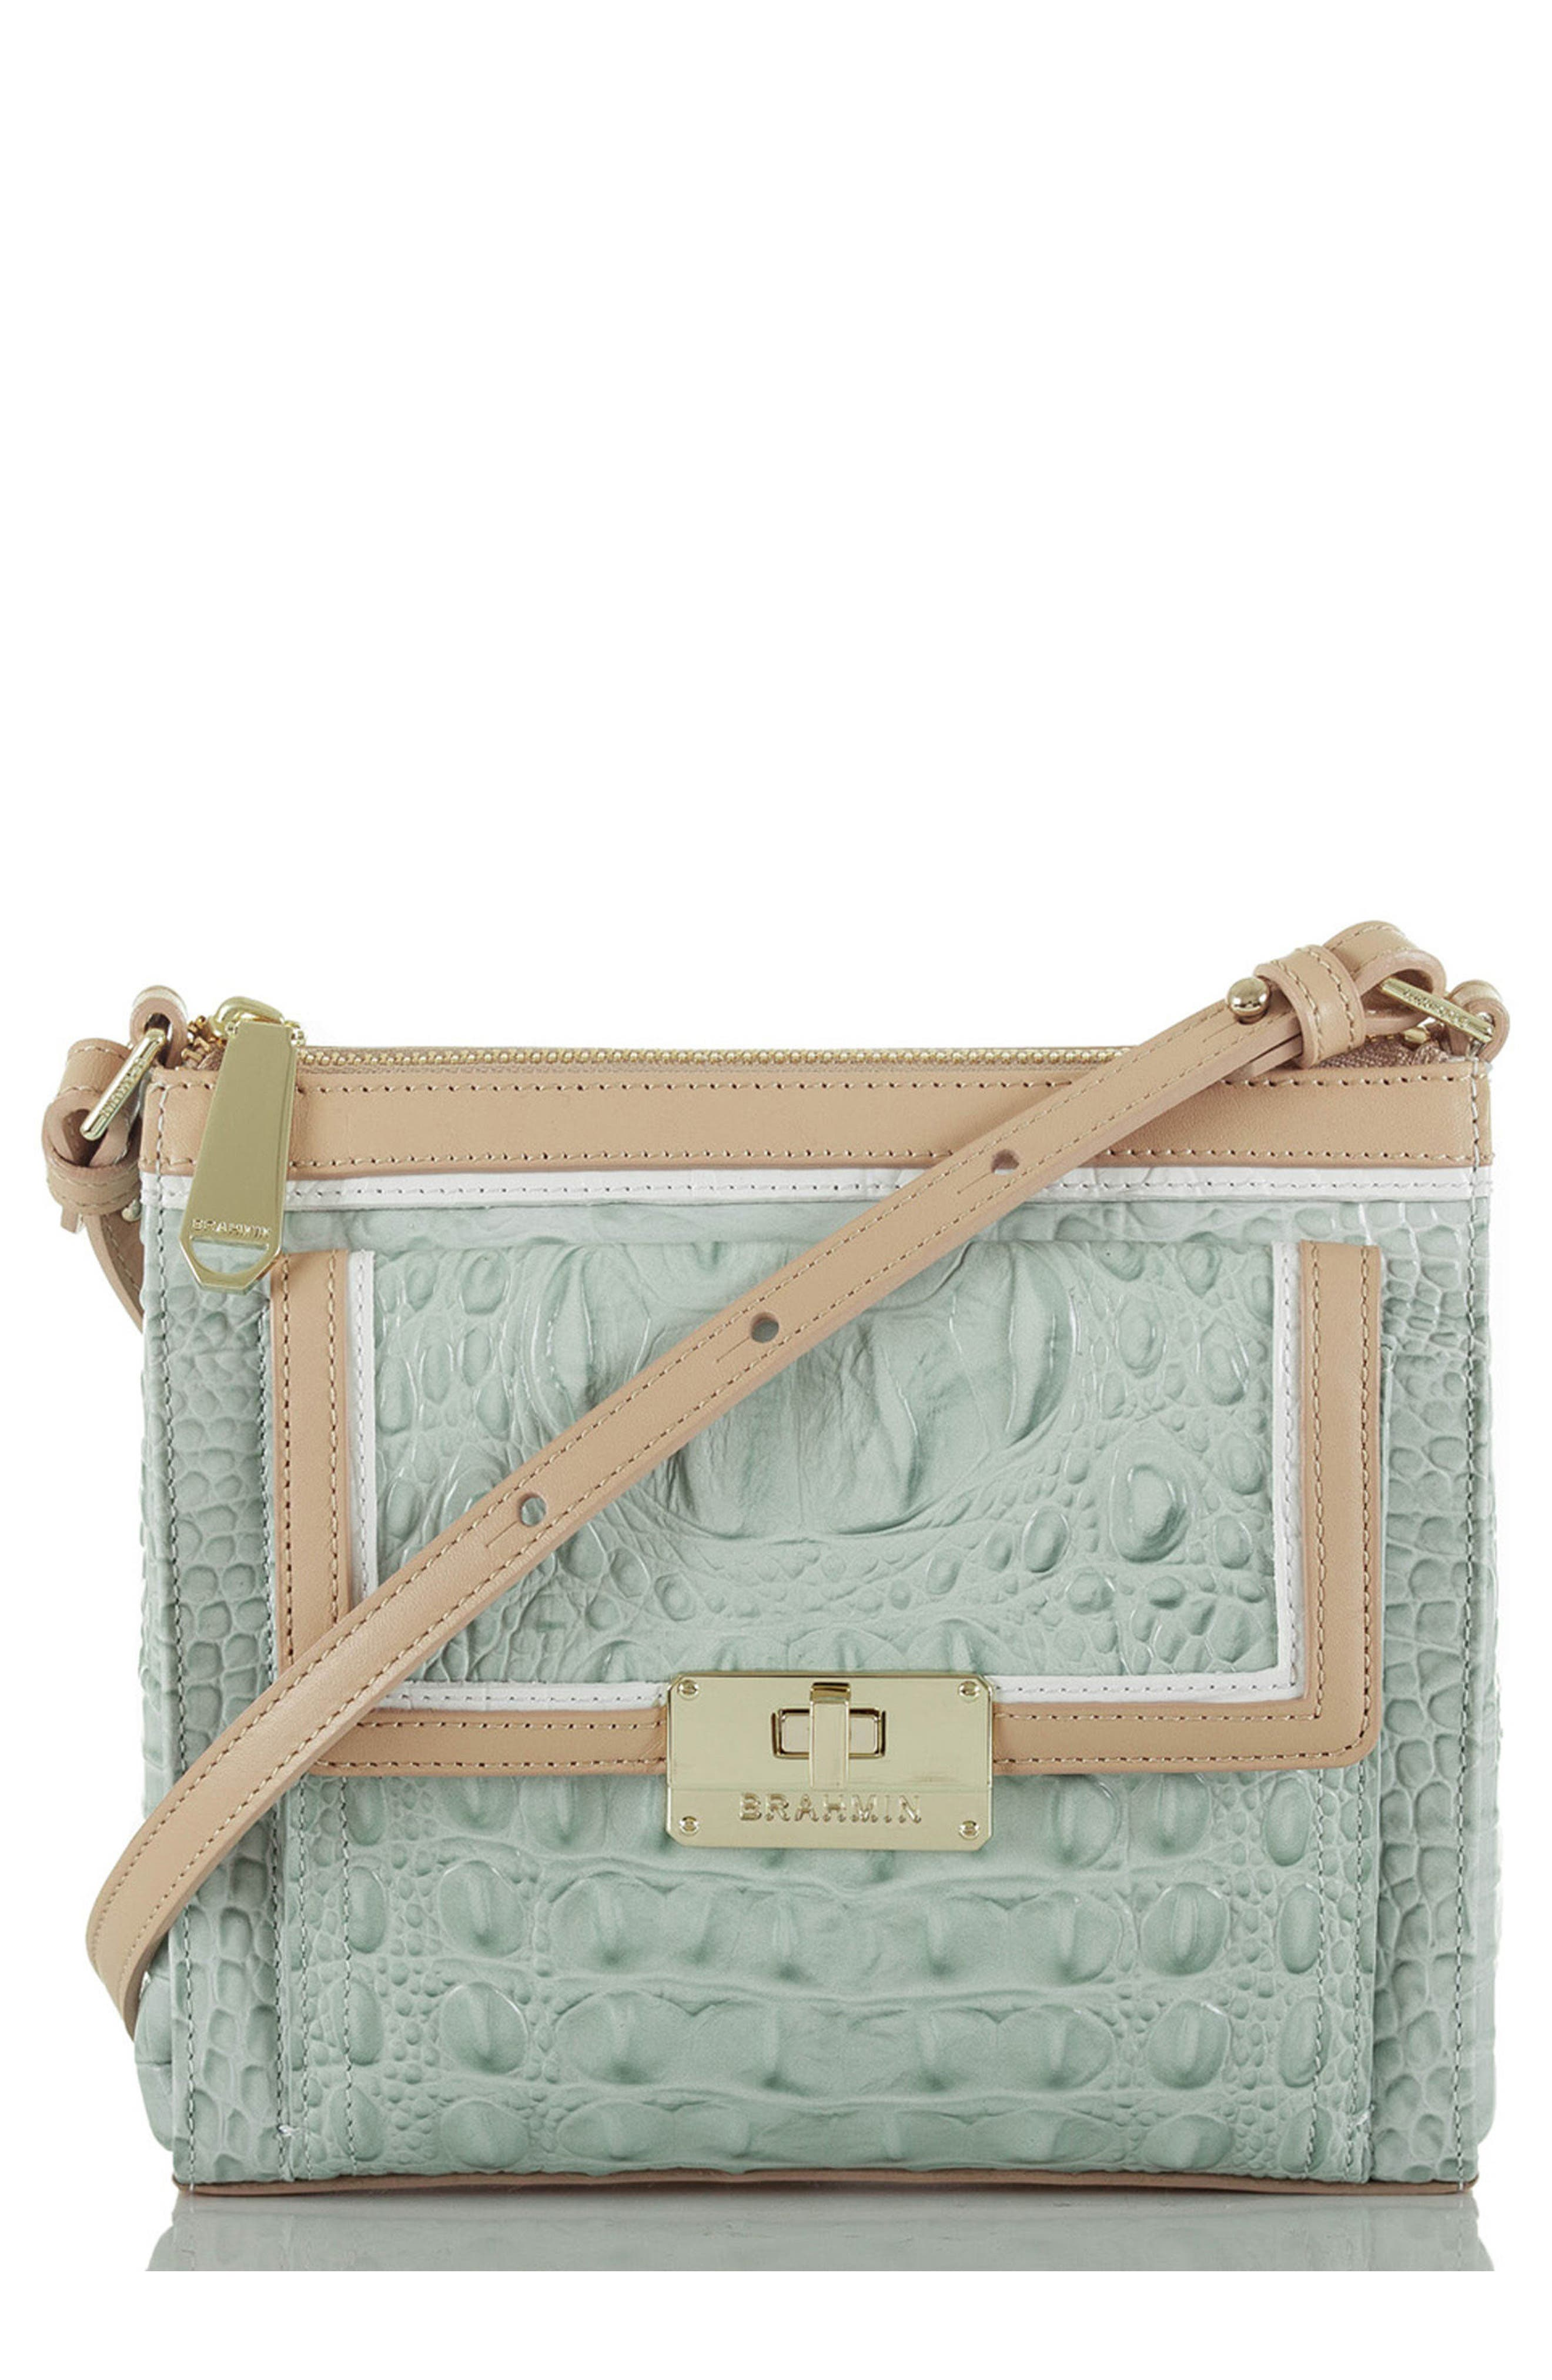 BRAHMIN 'Mimosa' Croc Embossed Leather Crossbody Bag